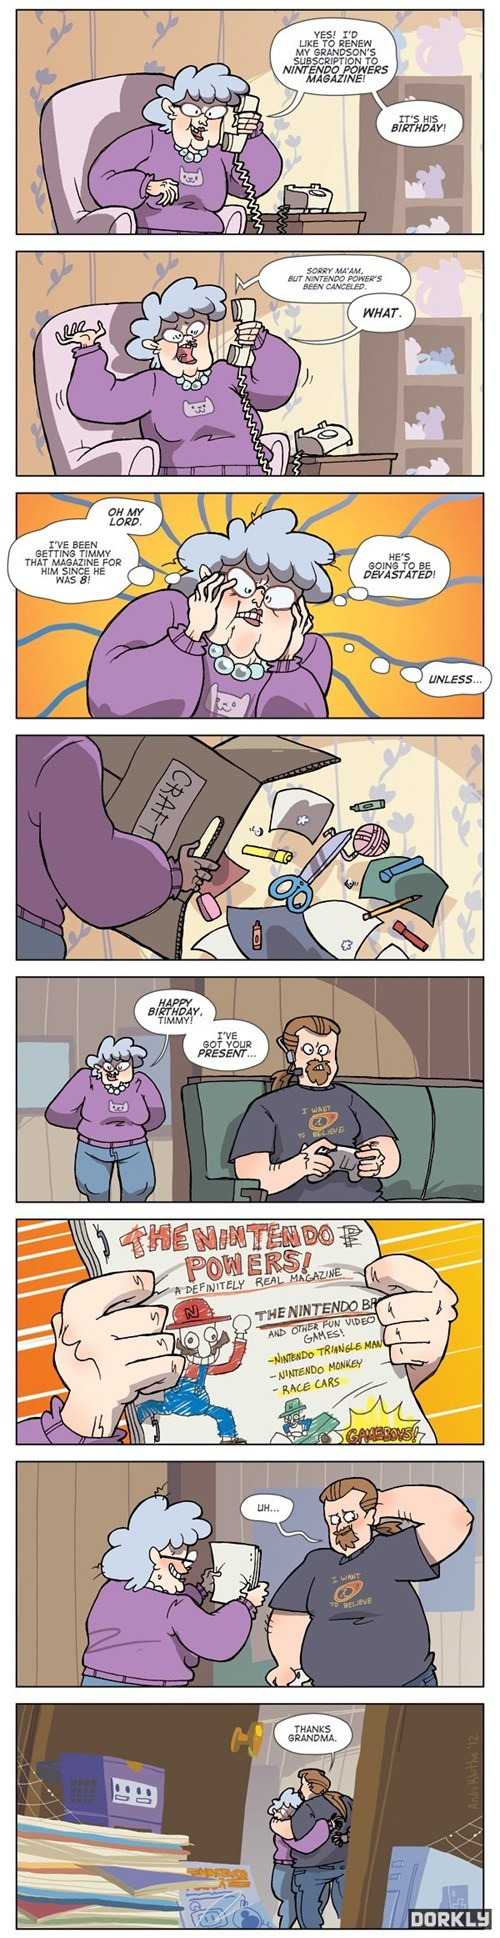 comic grandma nintendo power - 6549572608